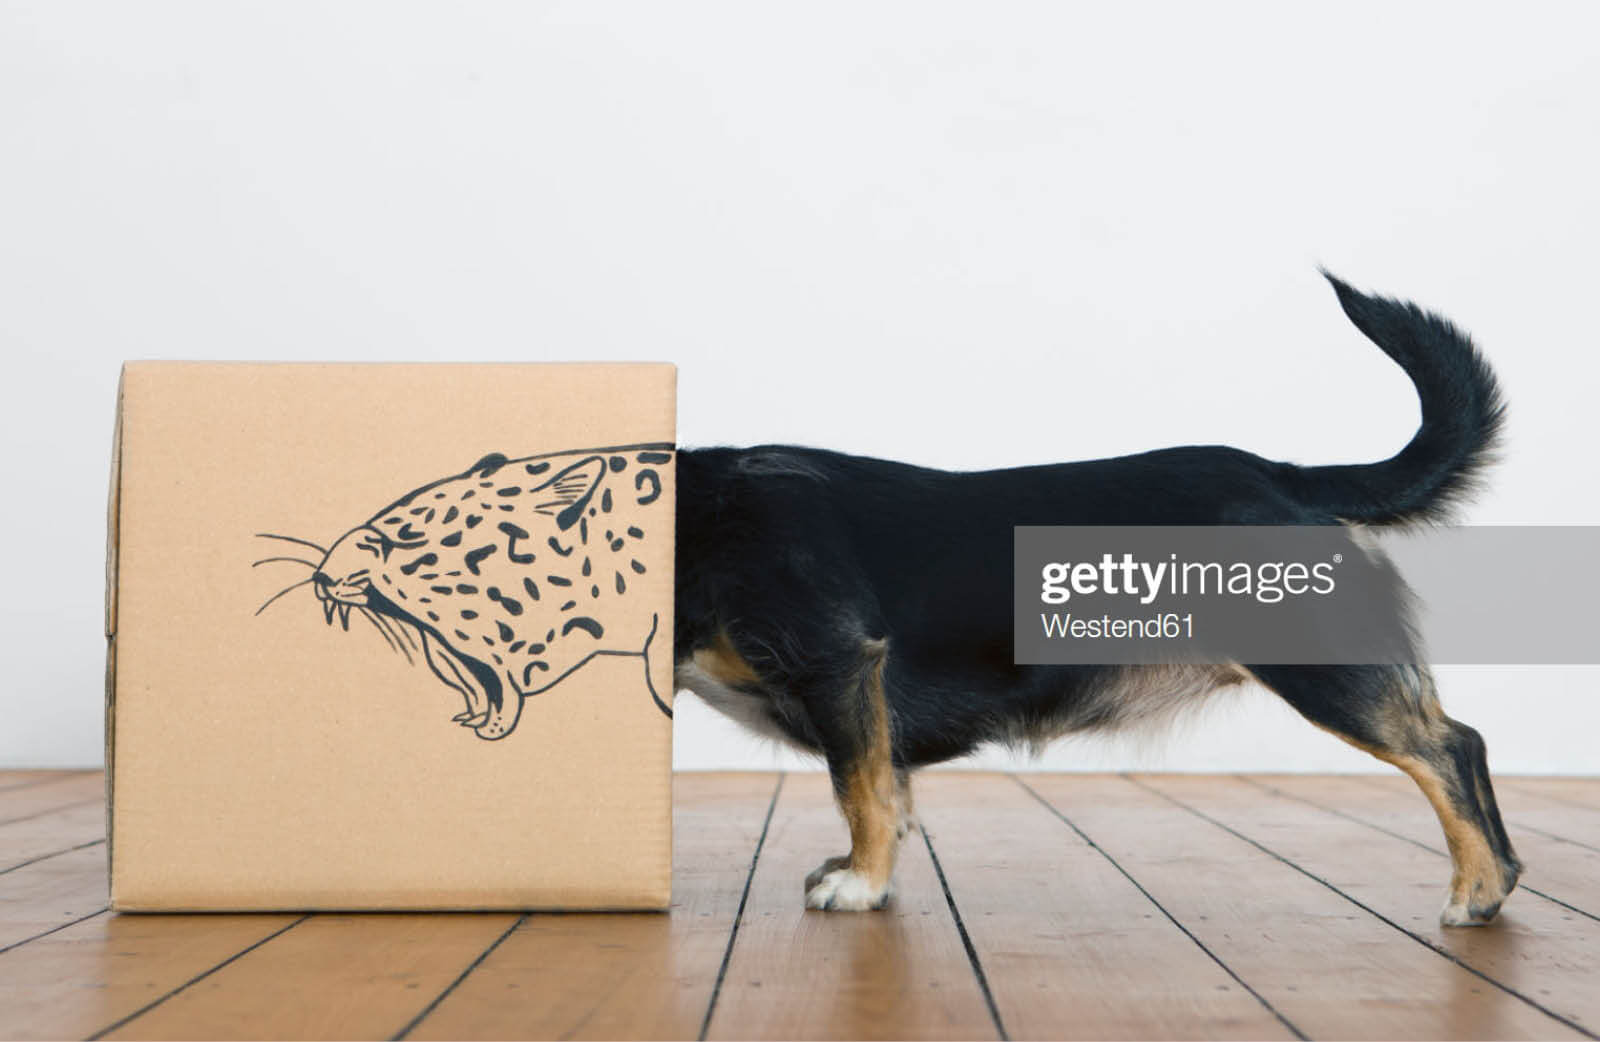 Roaring dog inside a cardboard box transforming and branding it to make it look like a leopard in the digital jungle